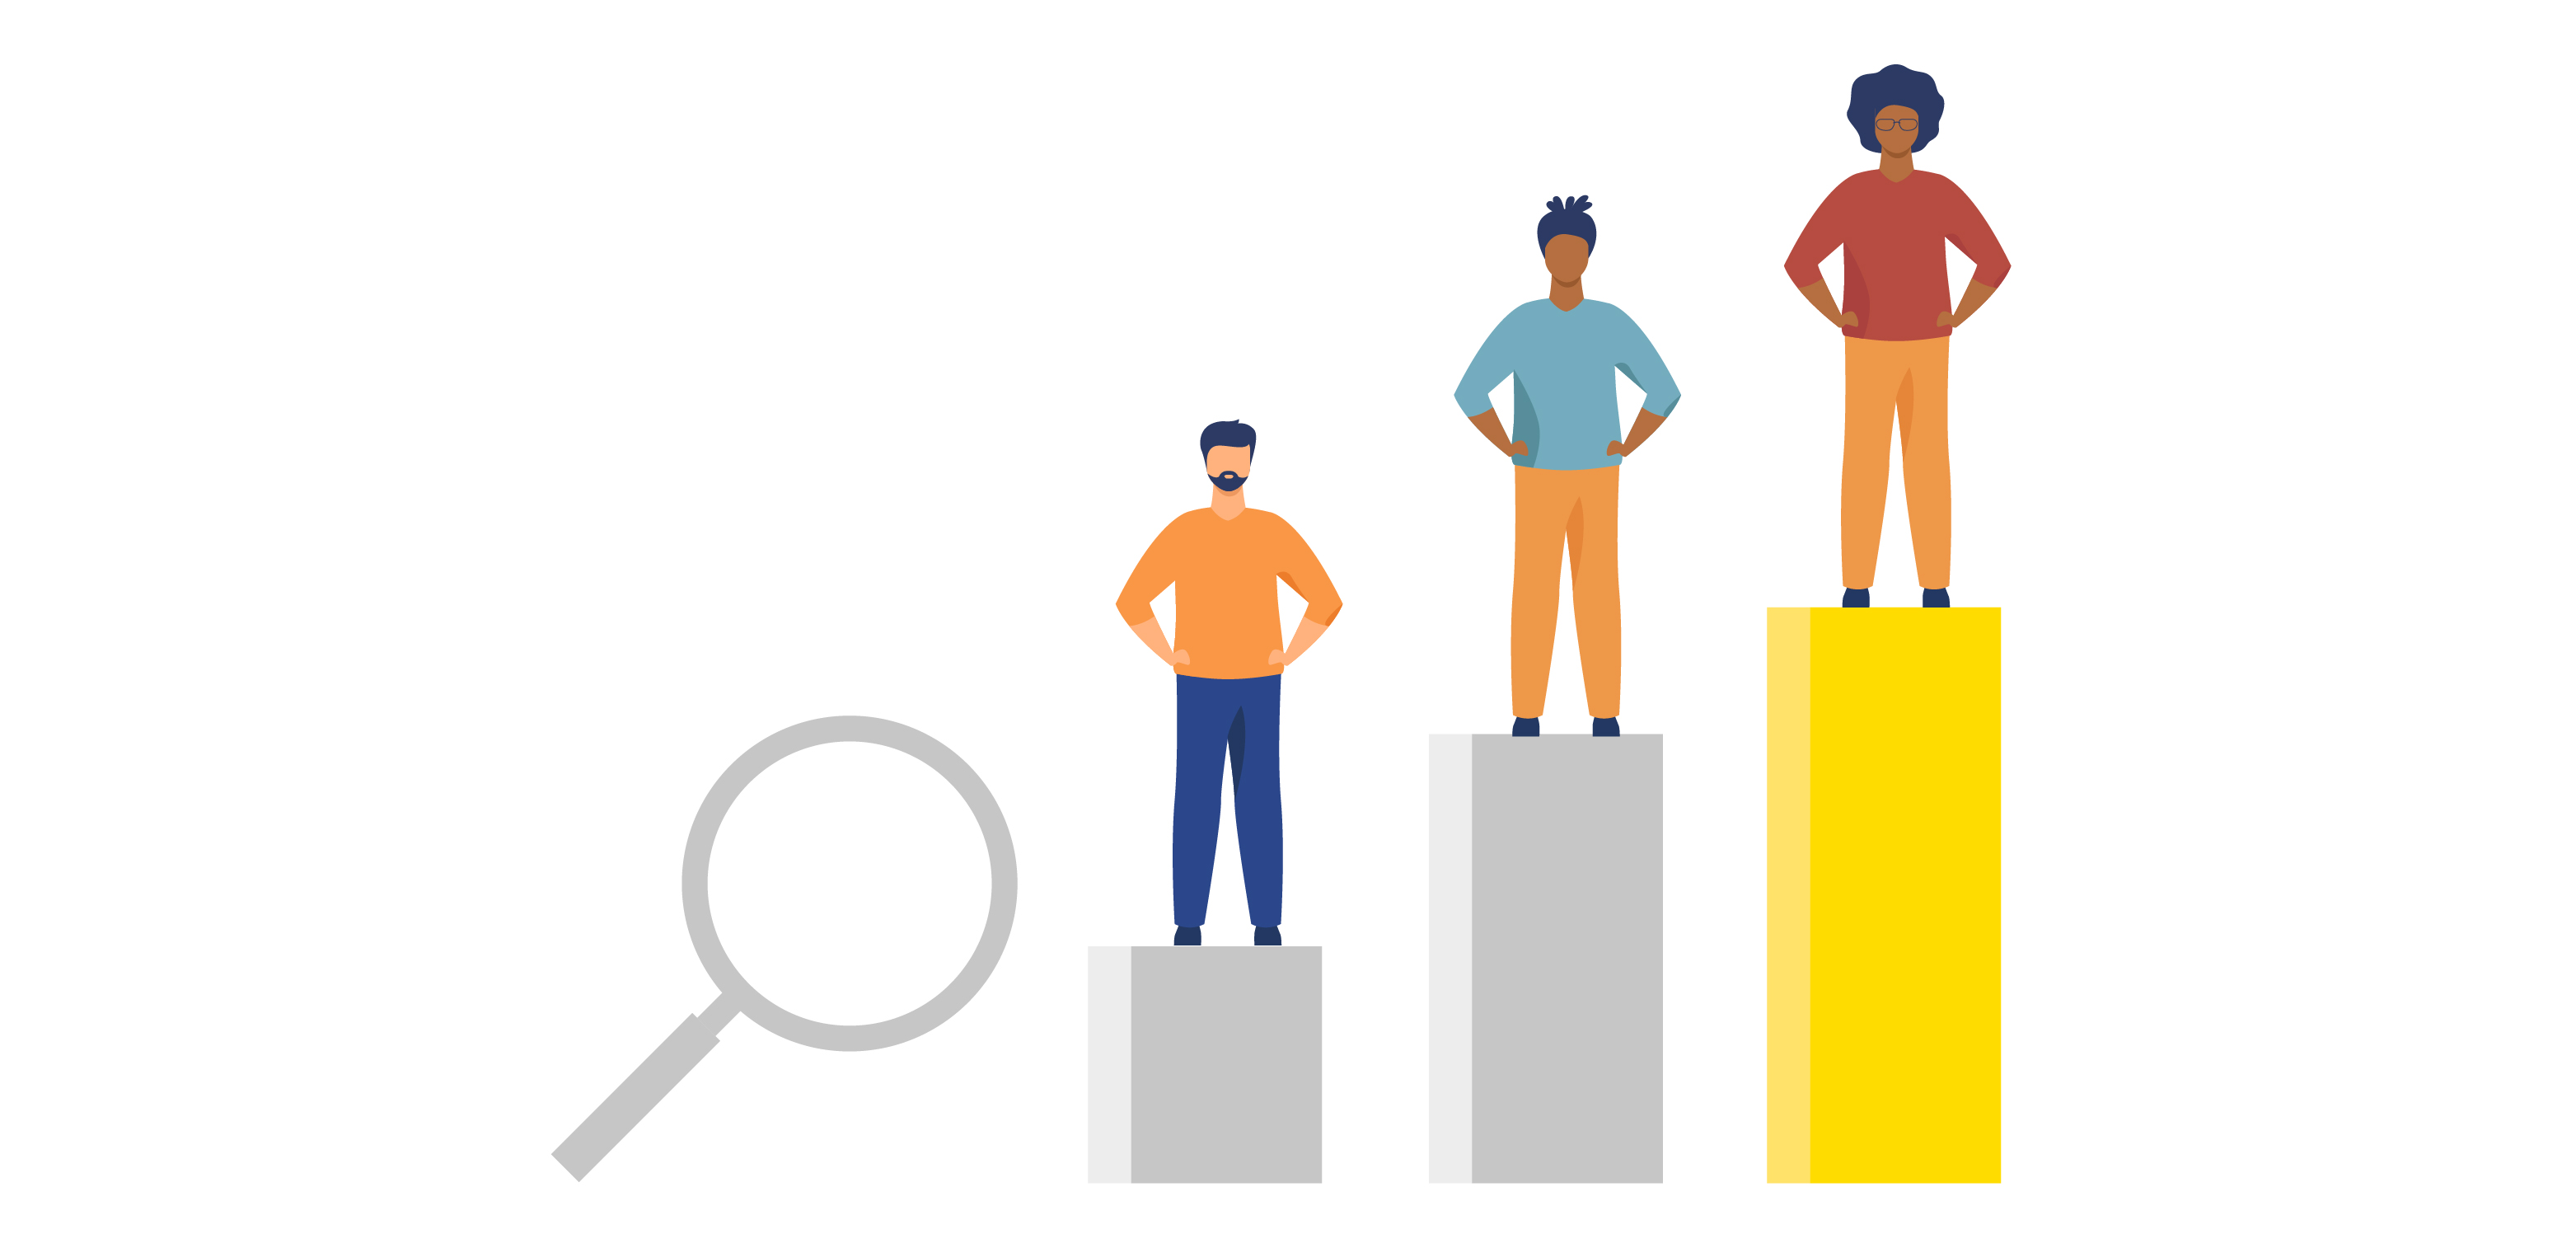 Improve your search engine rankings graphic with people stood on podiums